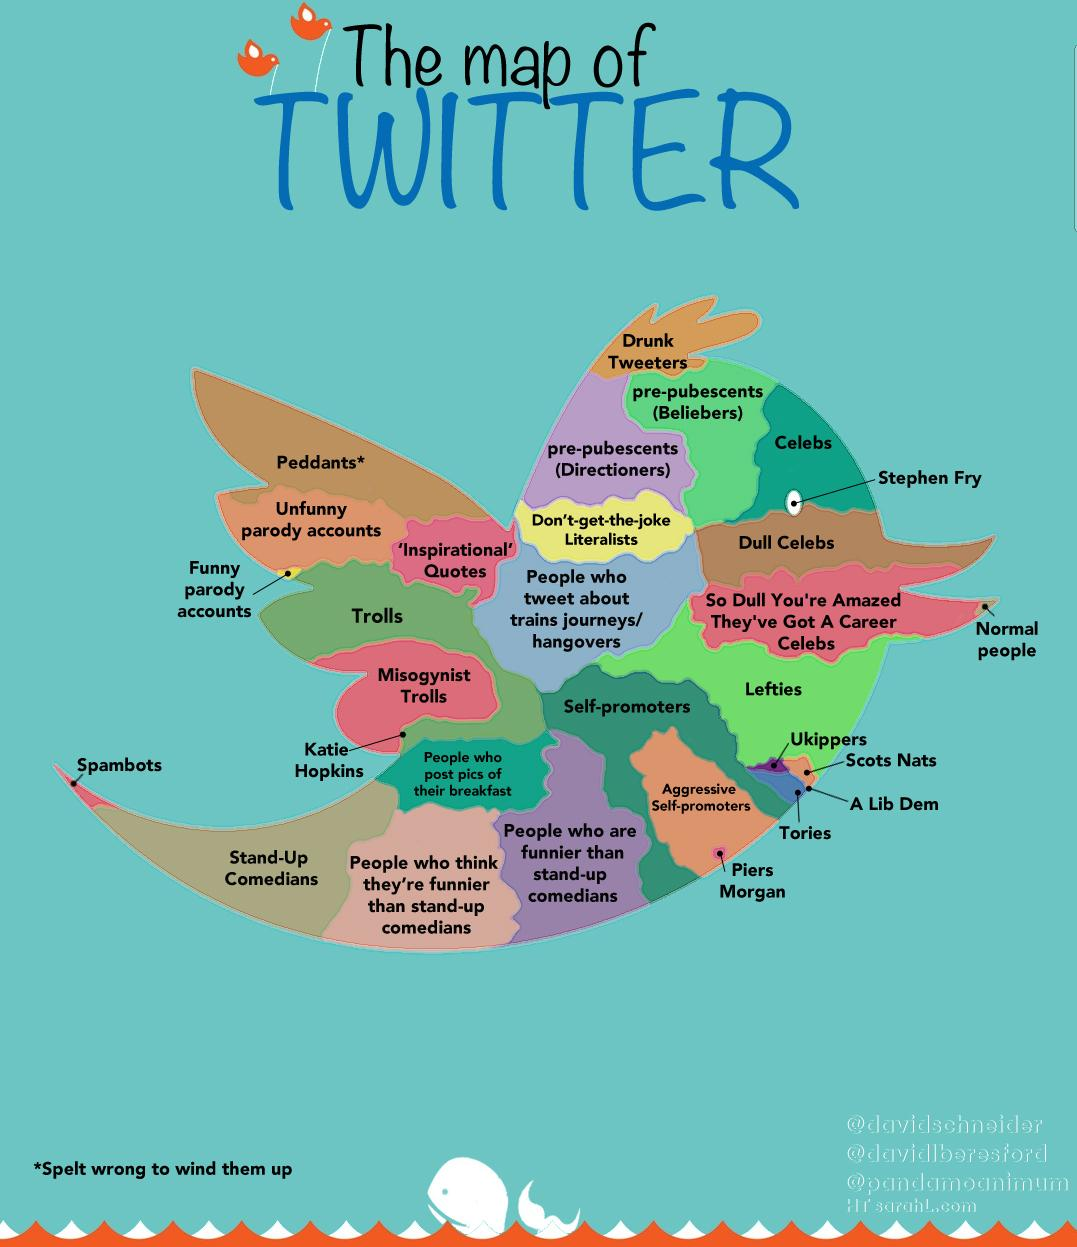 RT @thatlot: In case you've not seen it, here's a map of Twitter. (by @davidschneider and @pandamoanimum) http://t.co/wsKJcrsSrx